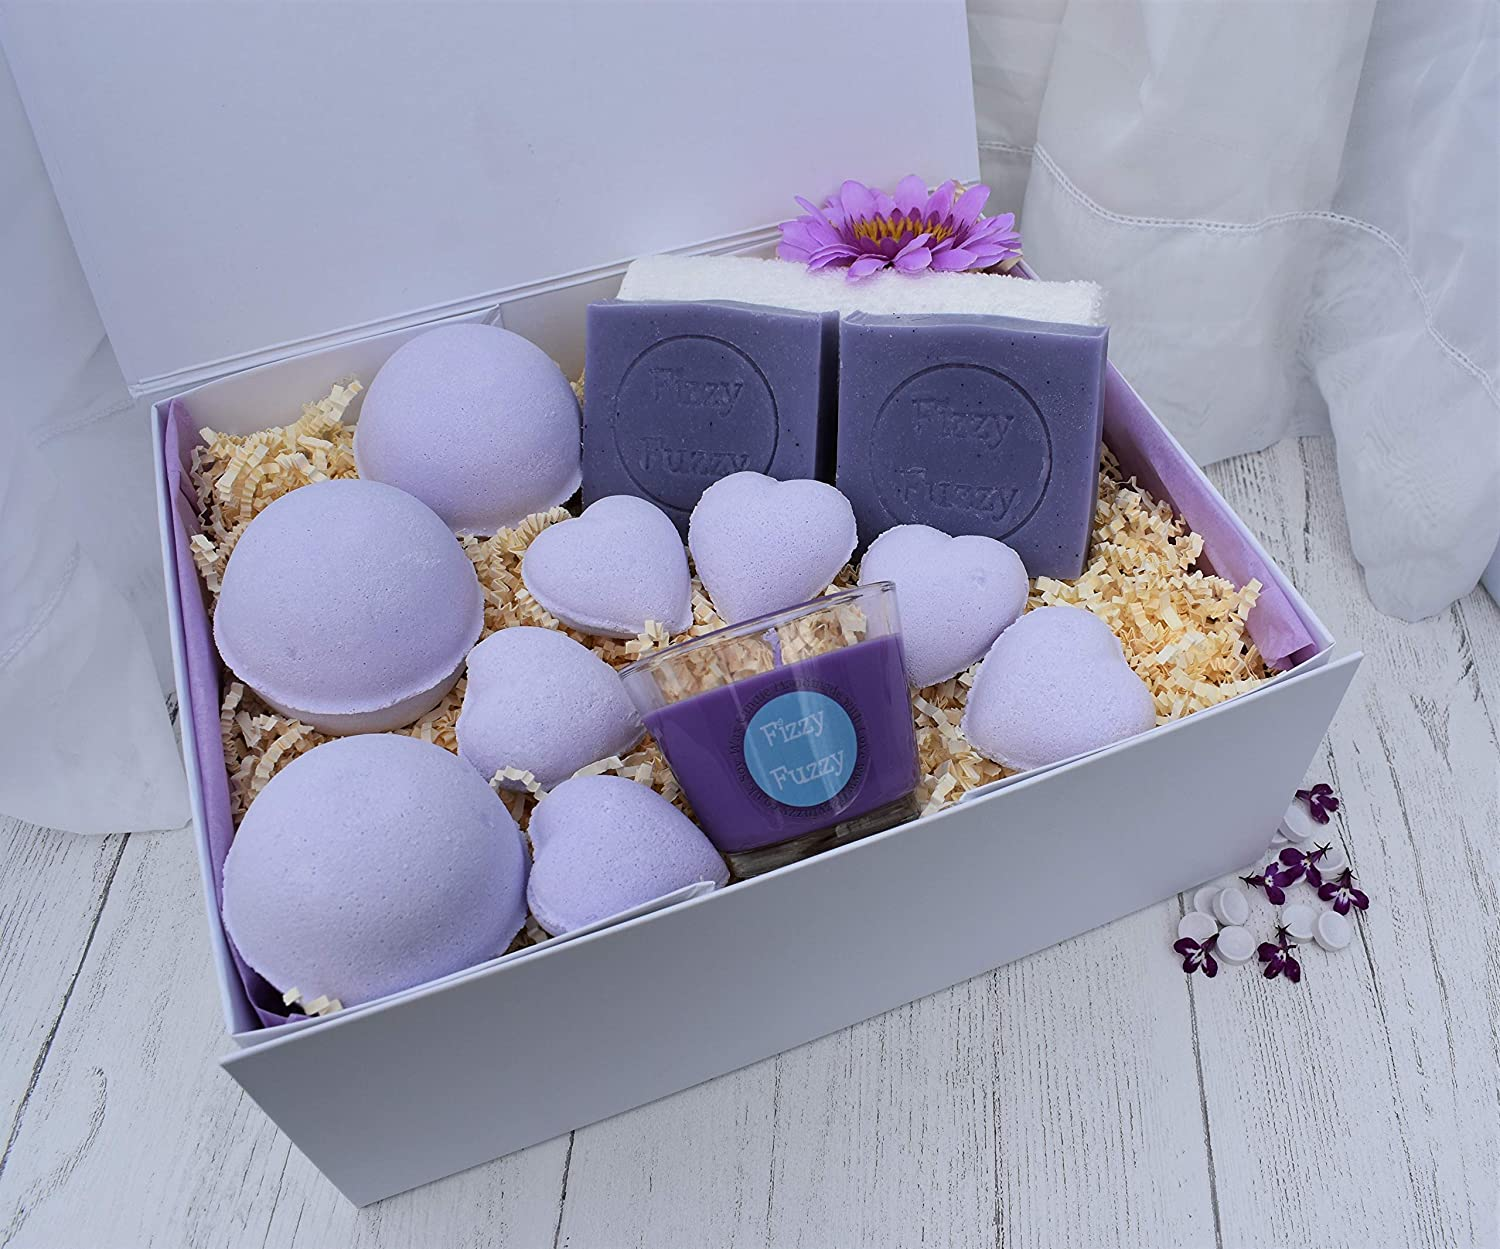 Parma Violet Deluxe Gift Set Bath Bombs, Soap, Candle.Handmade by Fizzy Fuzzy.